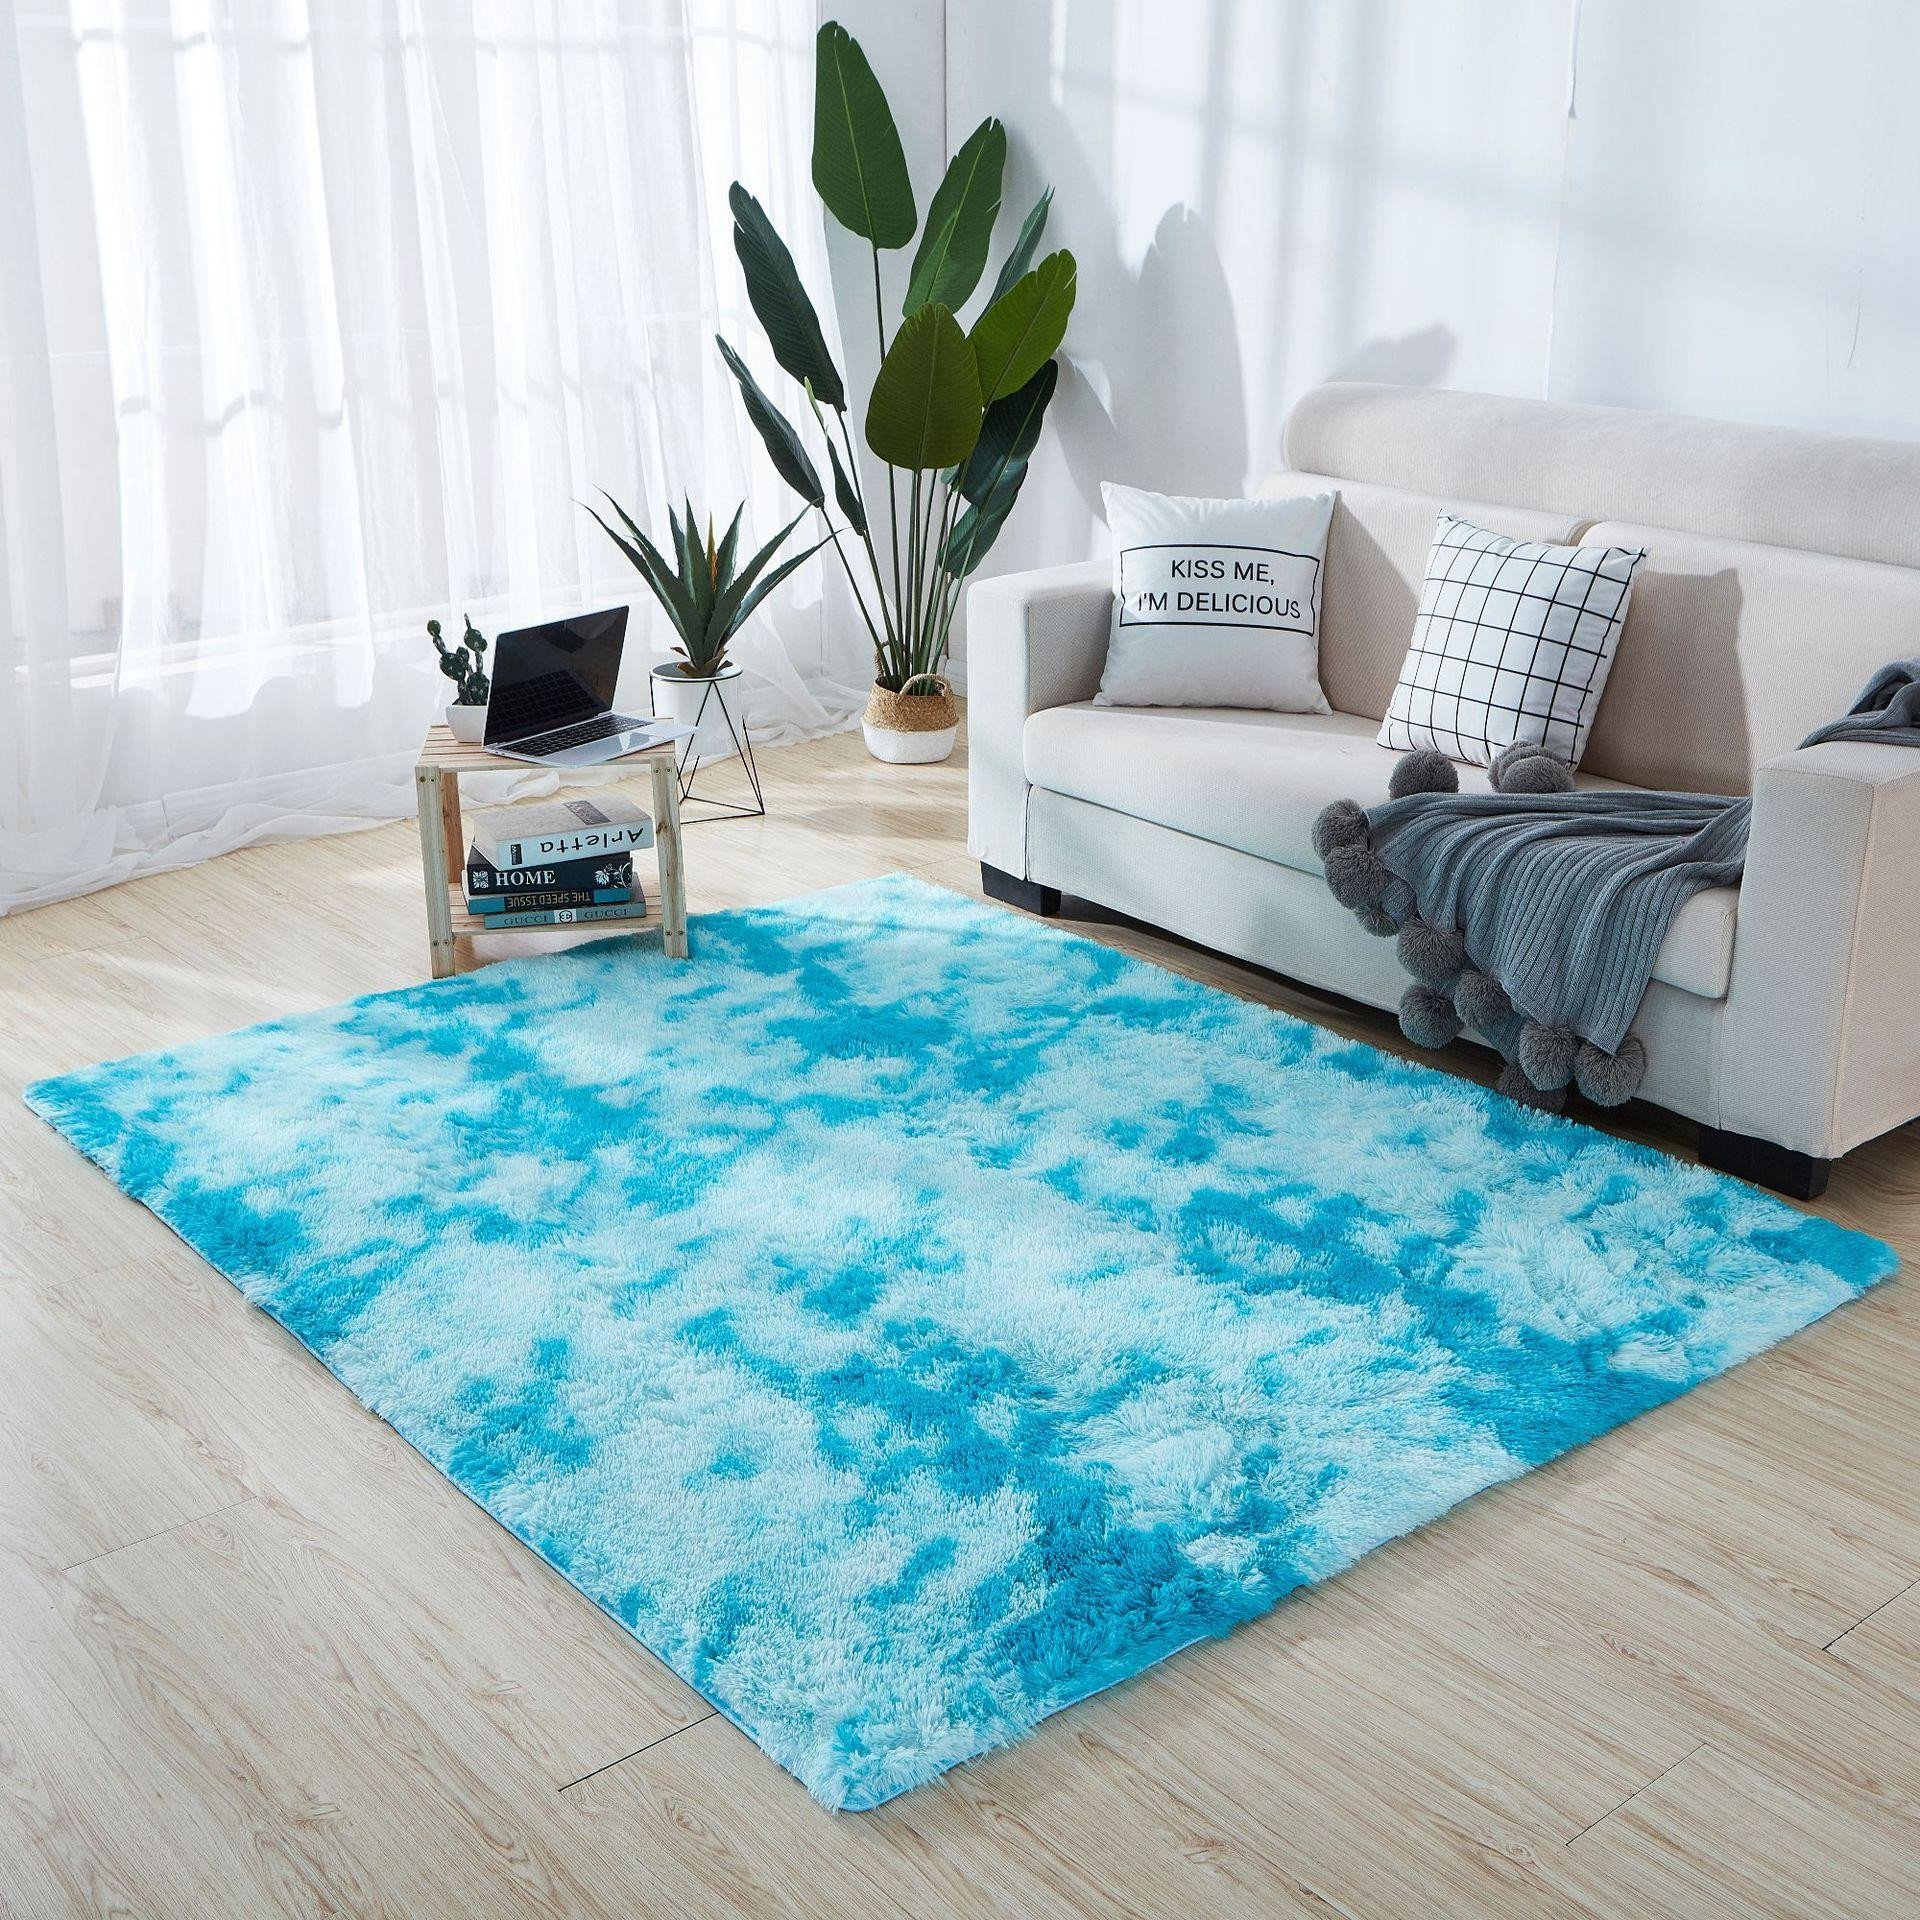 Rug On Carpet Bedroom Luxury Fashion Extra soft Carpet Anti Skid Shaggy Warm area Rug for Indoor Living Room Bedroom Carpet Binding Beaulieu Carpet From Junshengvip $10 06